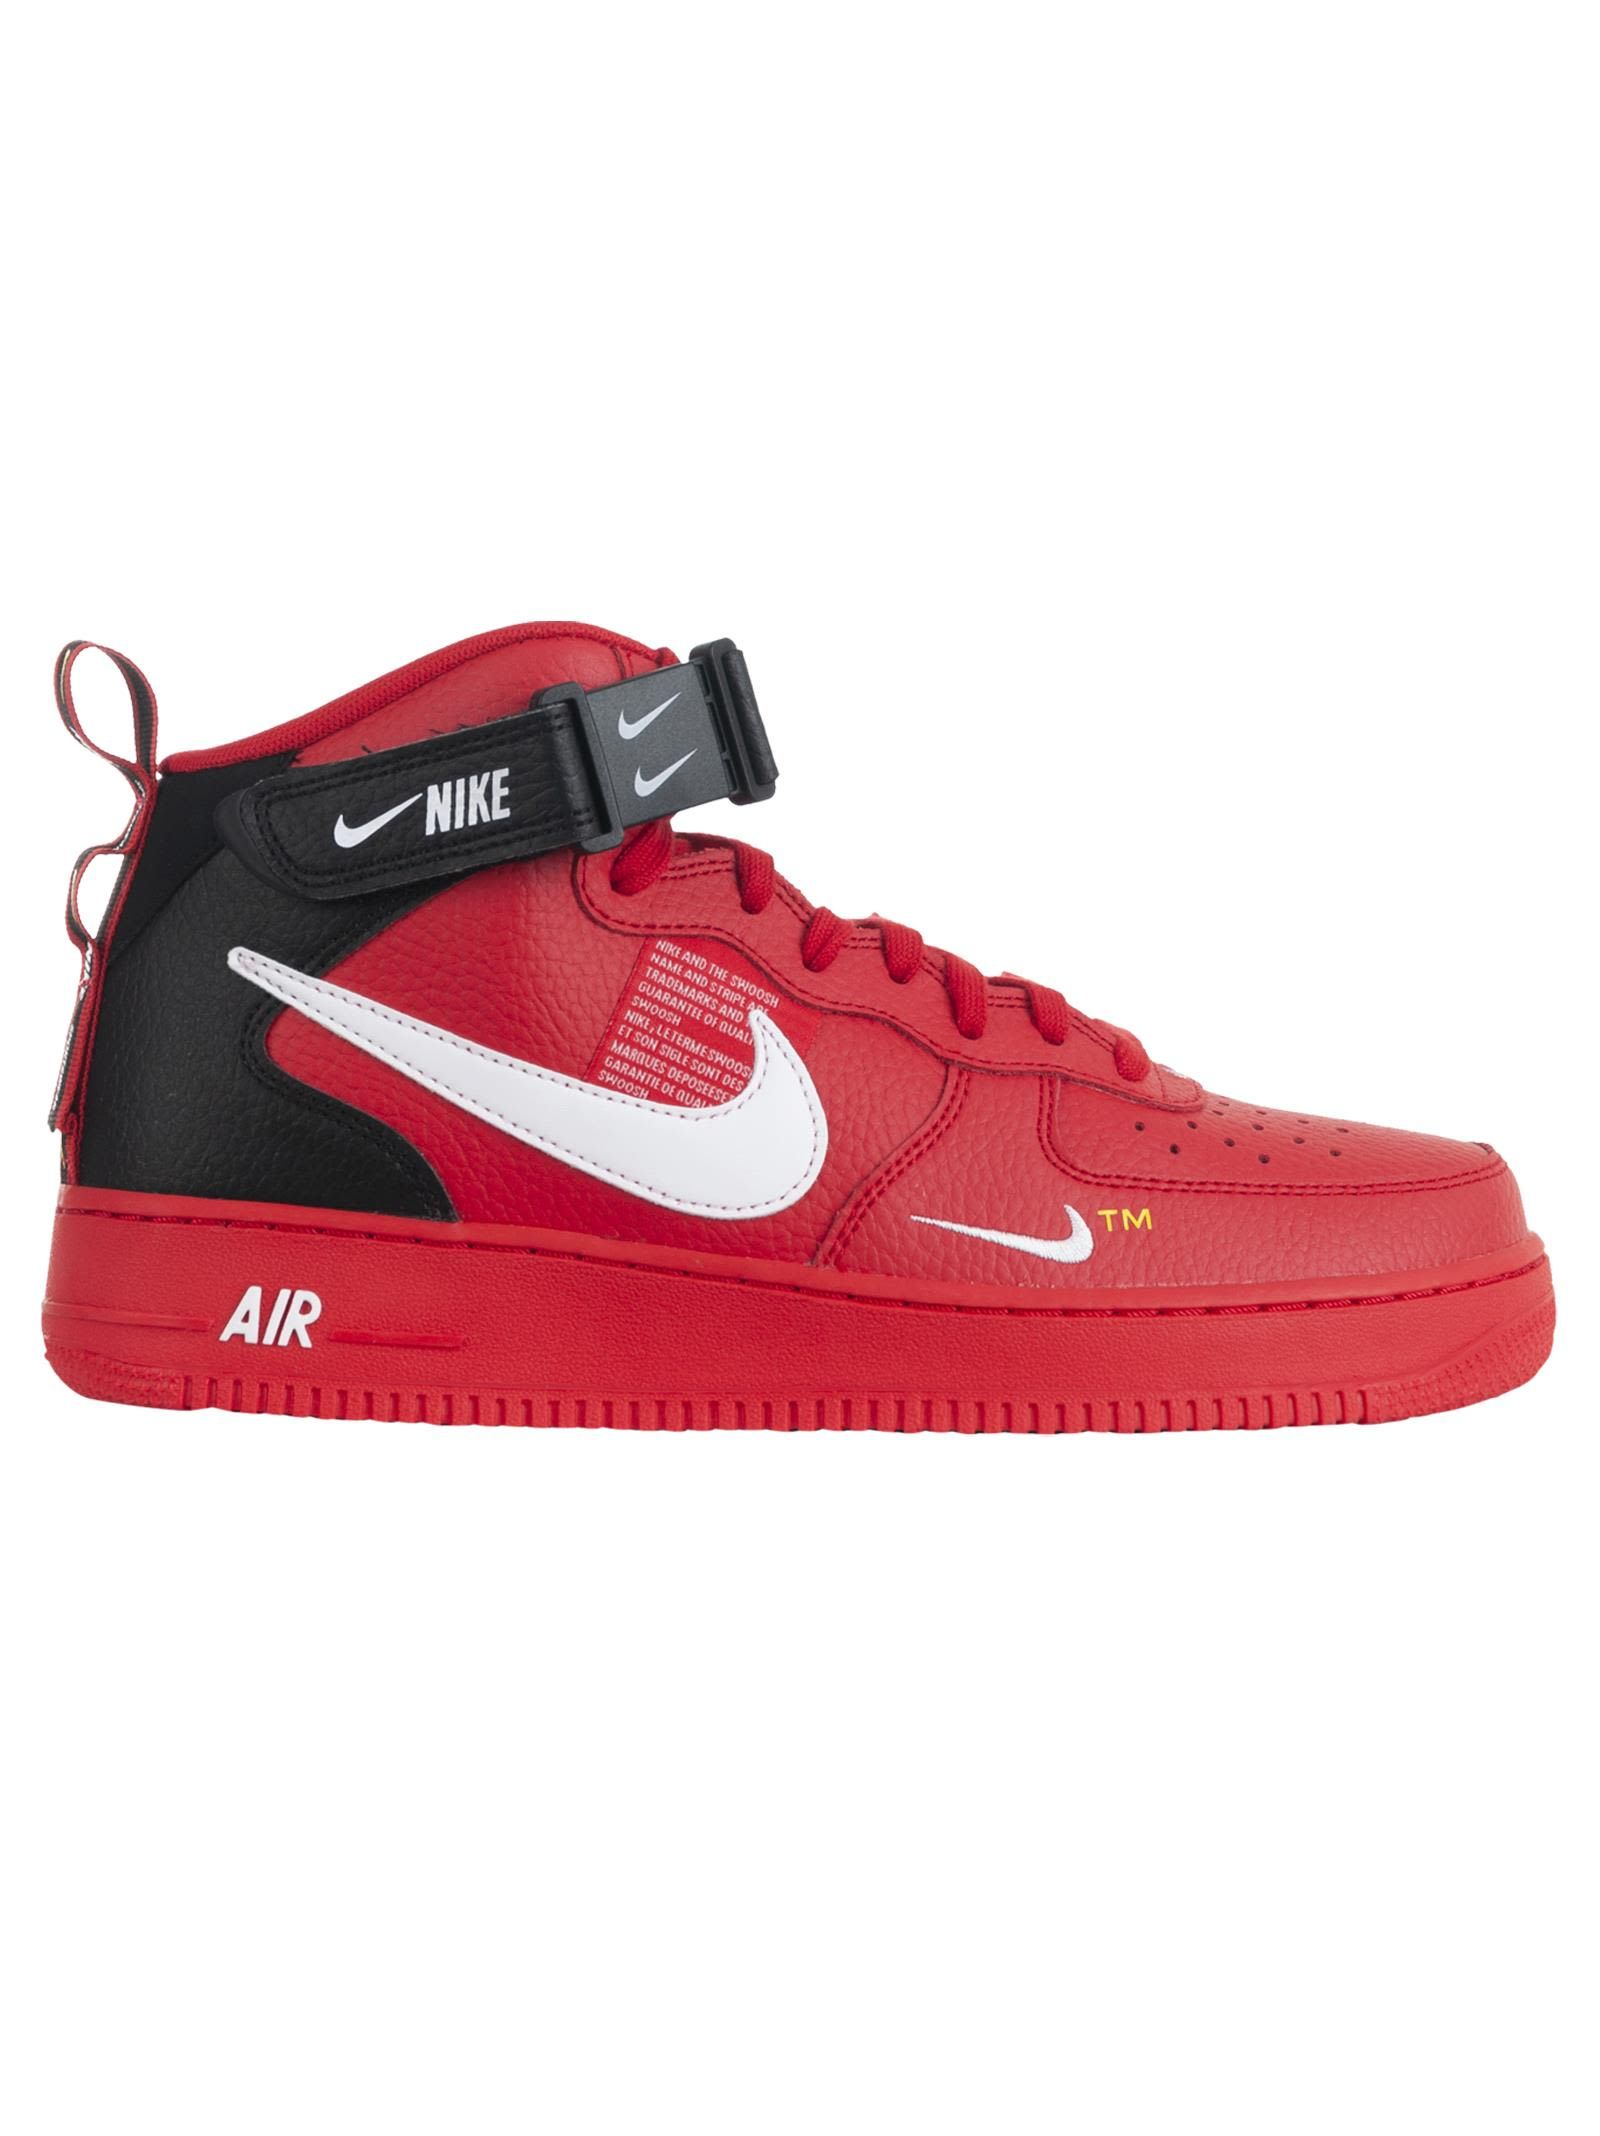 NIKE AIR FORCE 1 MID '07 LV8. #nike #shoes | Nike in 2019